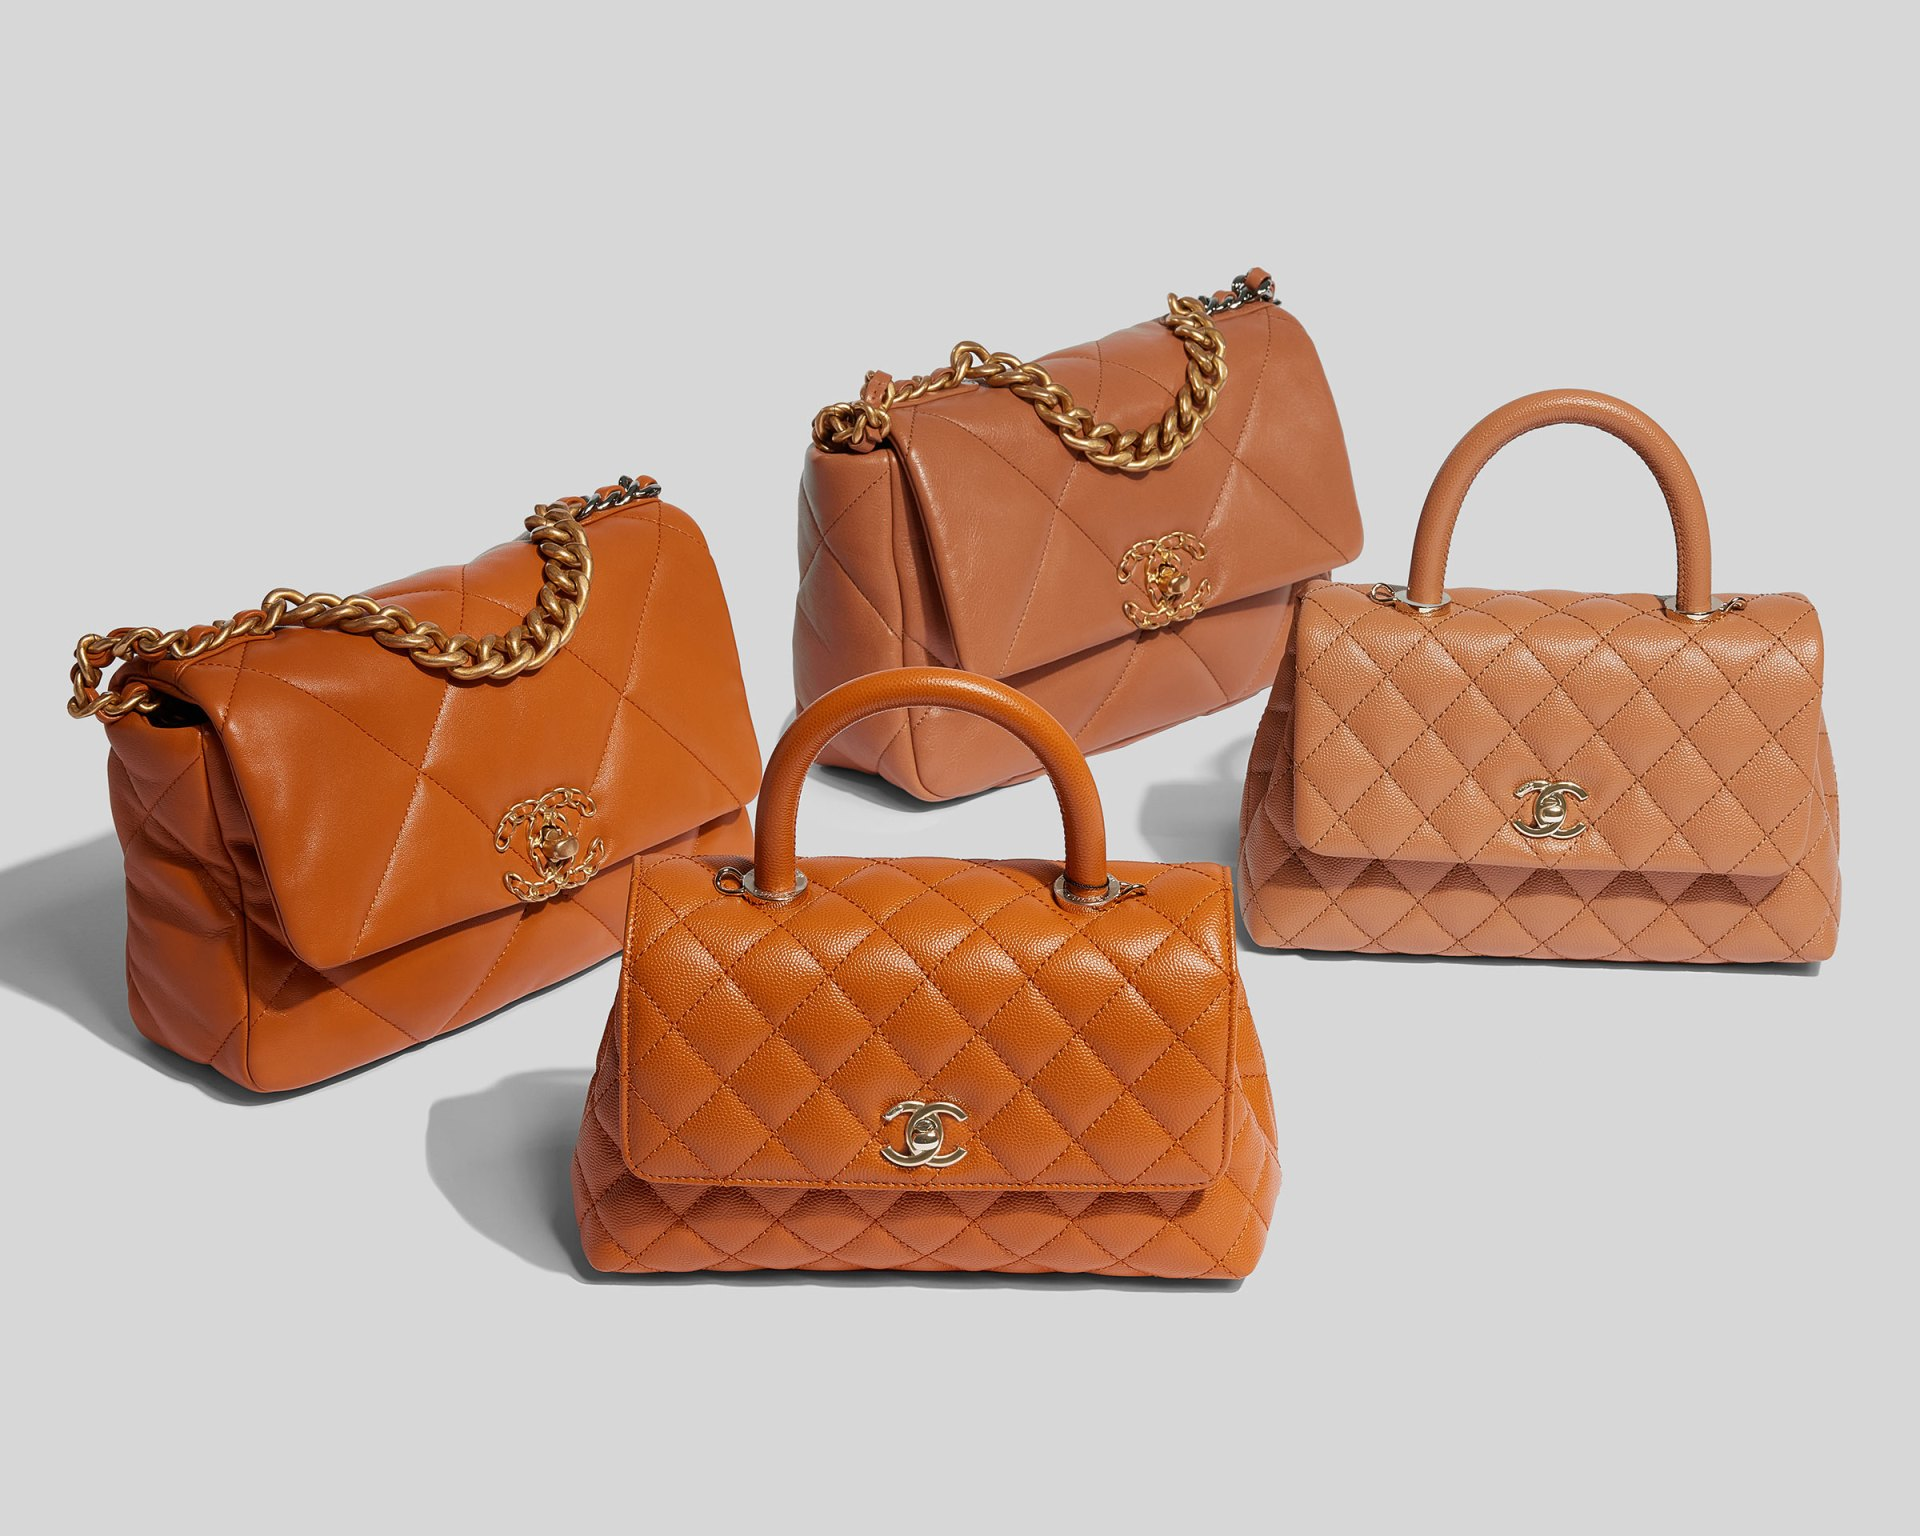 Product image of the Chanel mini coco handle bags and the Chanel 19 bags in Brown and Caramel colors